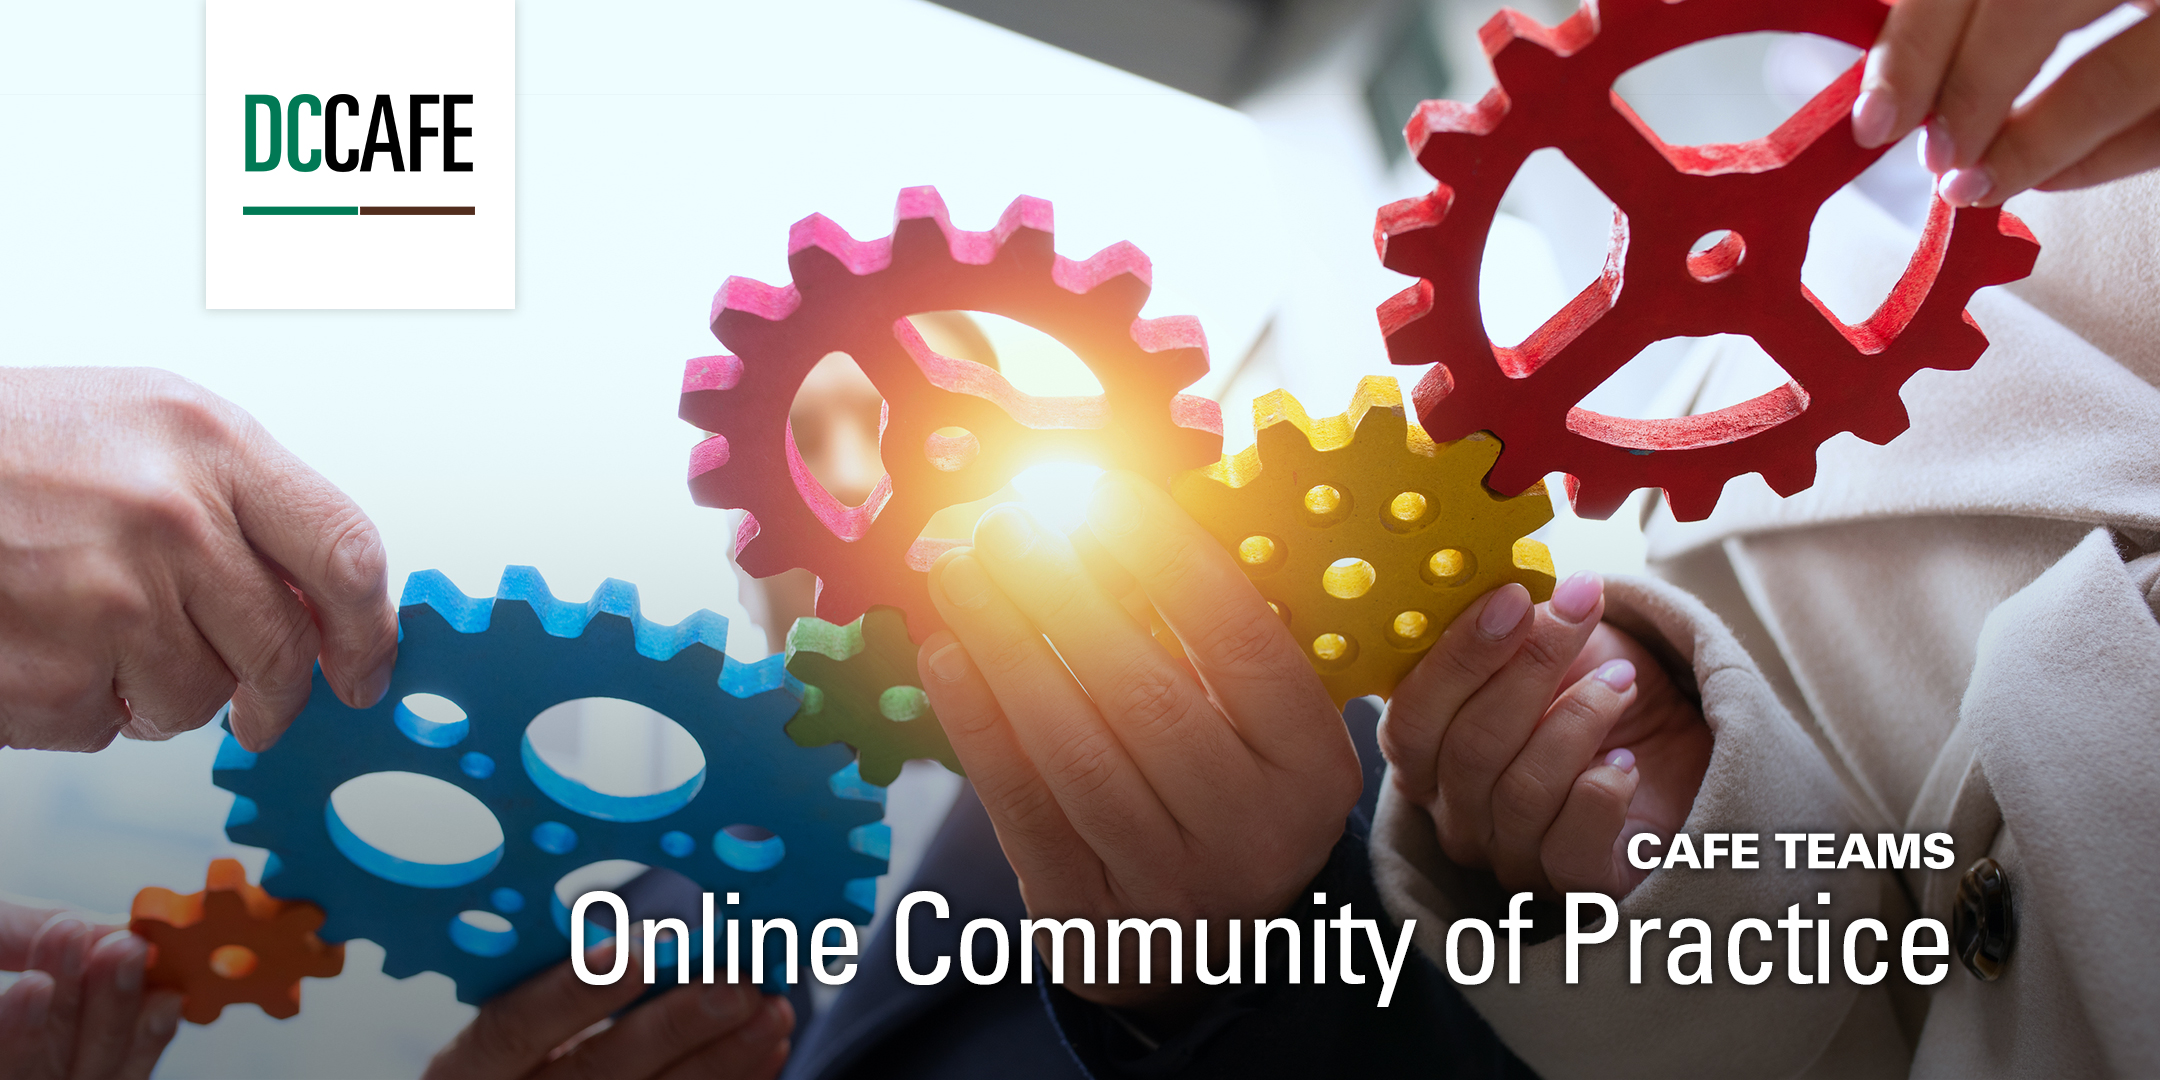 CAFE Teams - Online Community of Practice